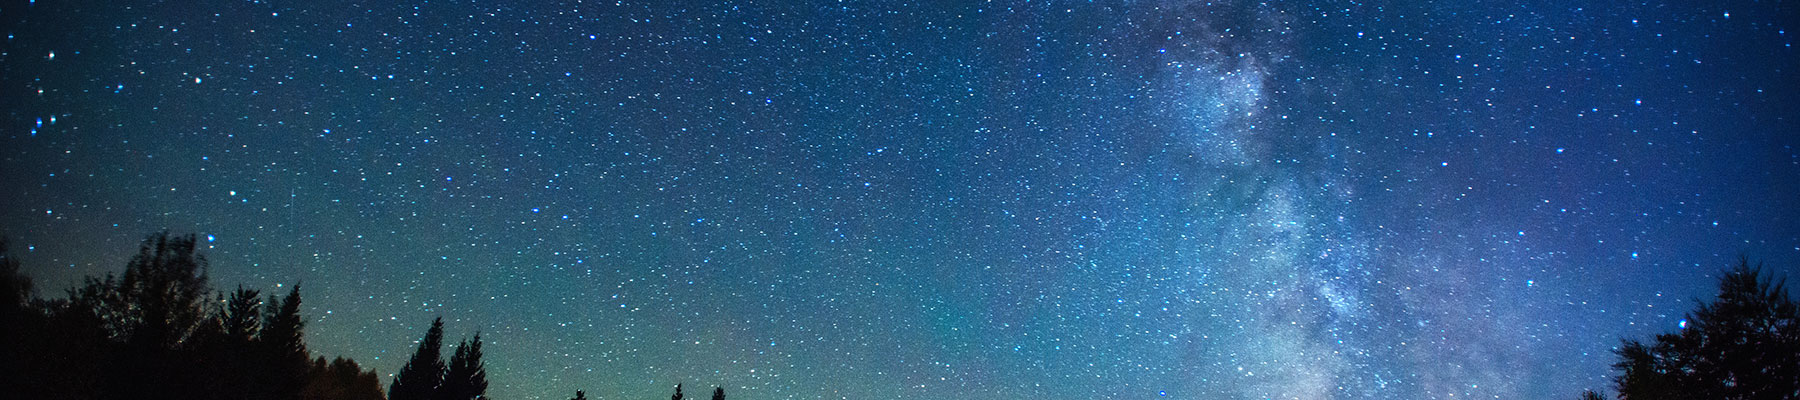 Perseid Meteor Shower Viewing Party at Dry Creek Preserve